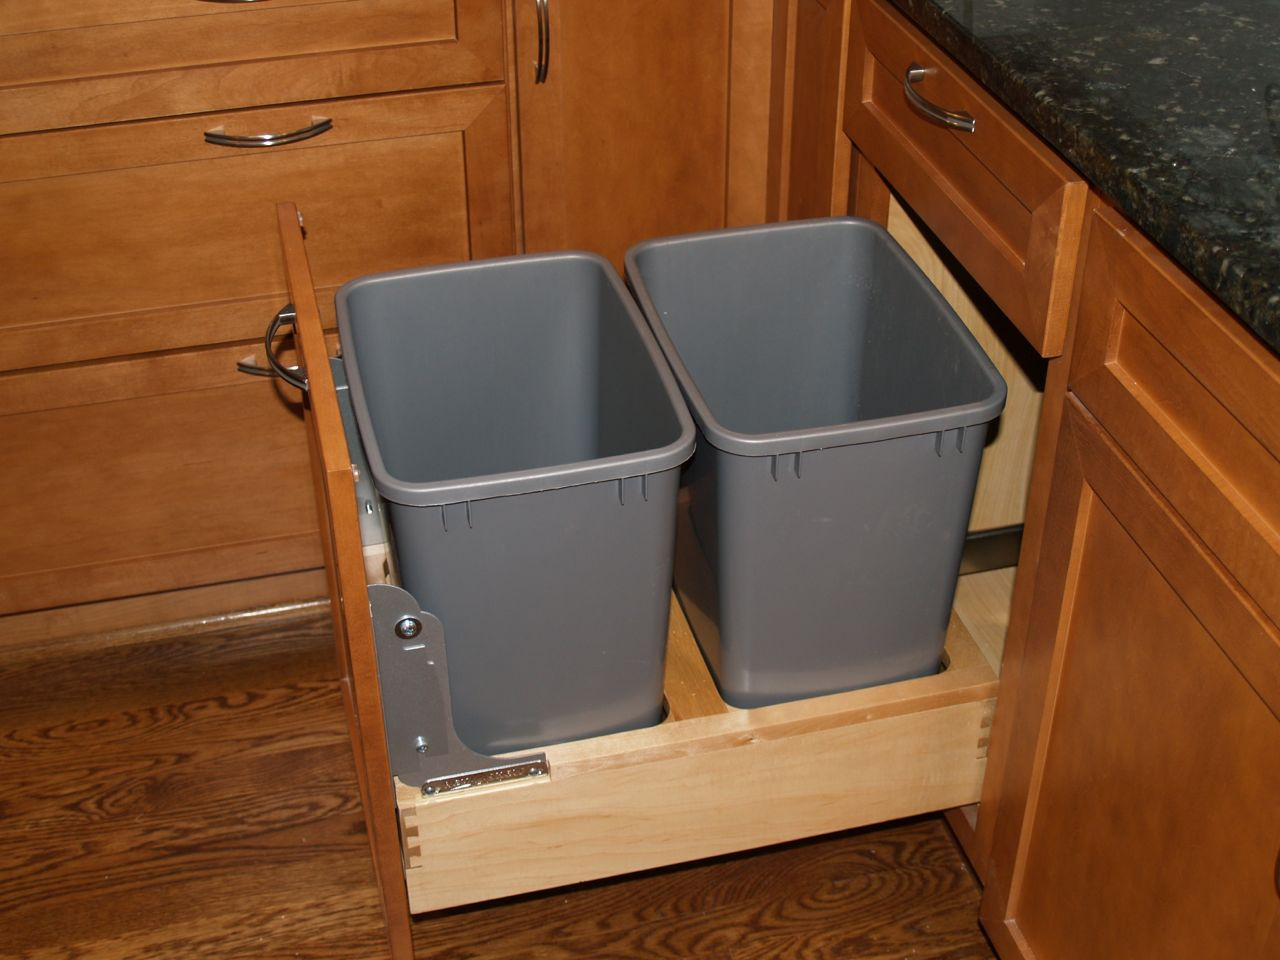 pull out trash can and recycling bin – Geeky Girl Engineer